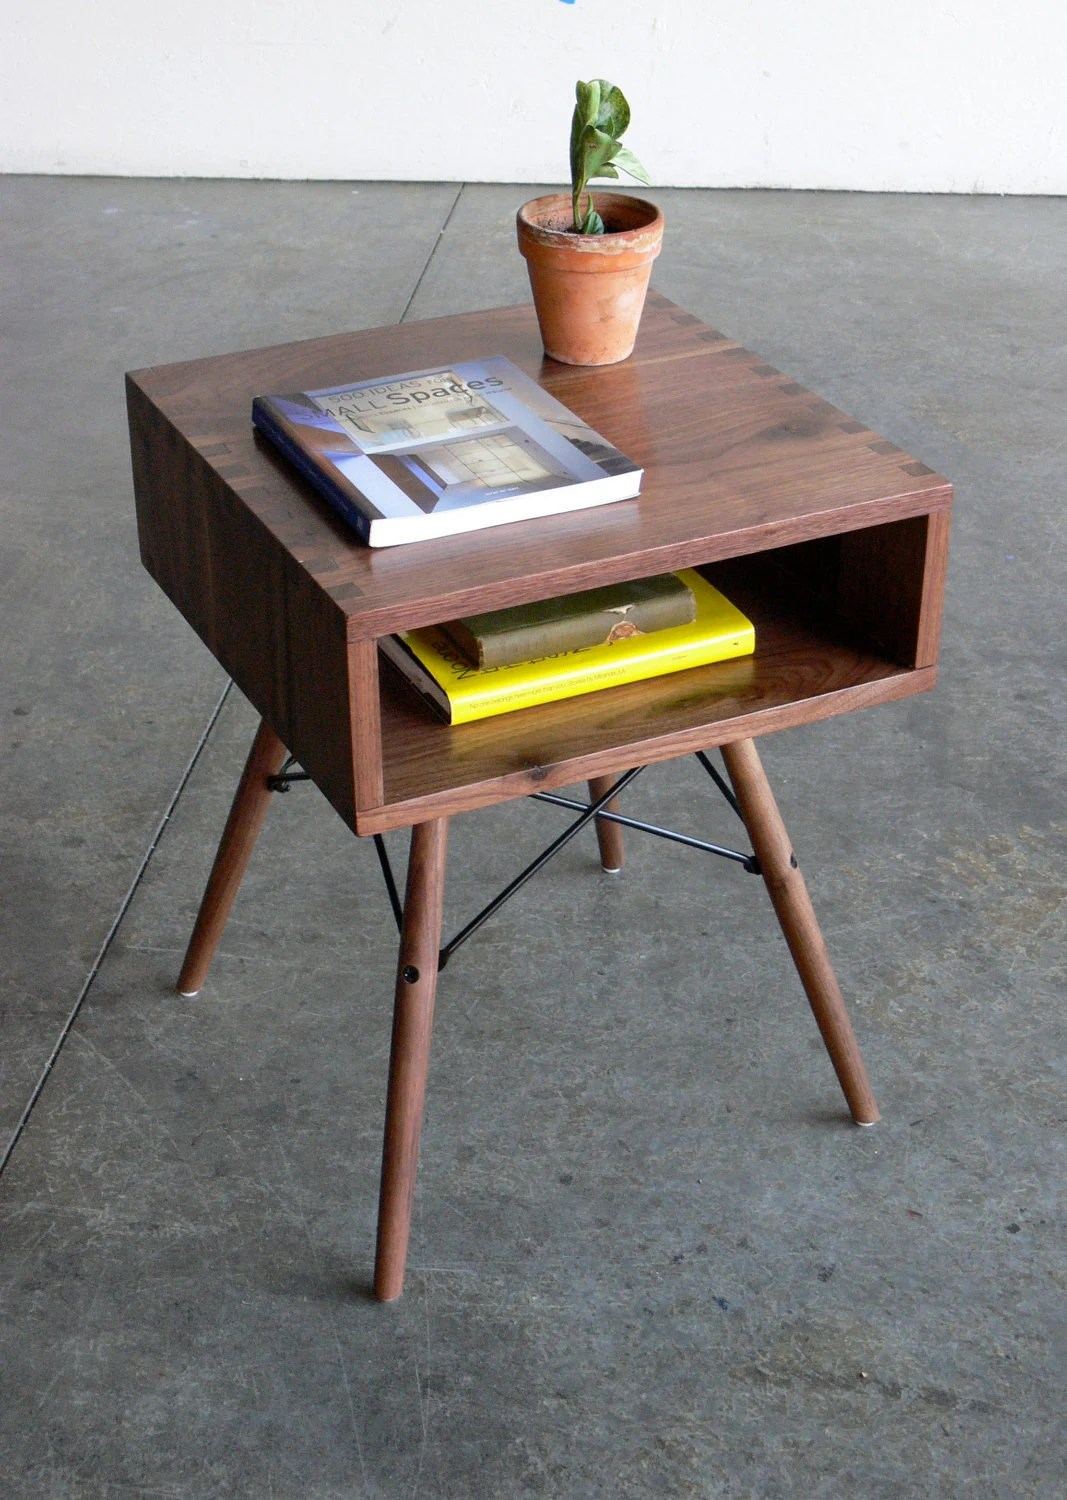 RESERVED LISTINGMid Century Modern Inspired Side Table